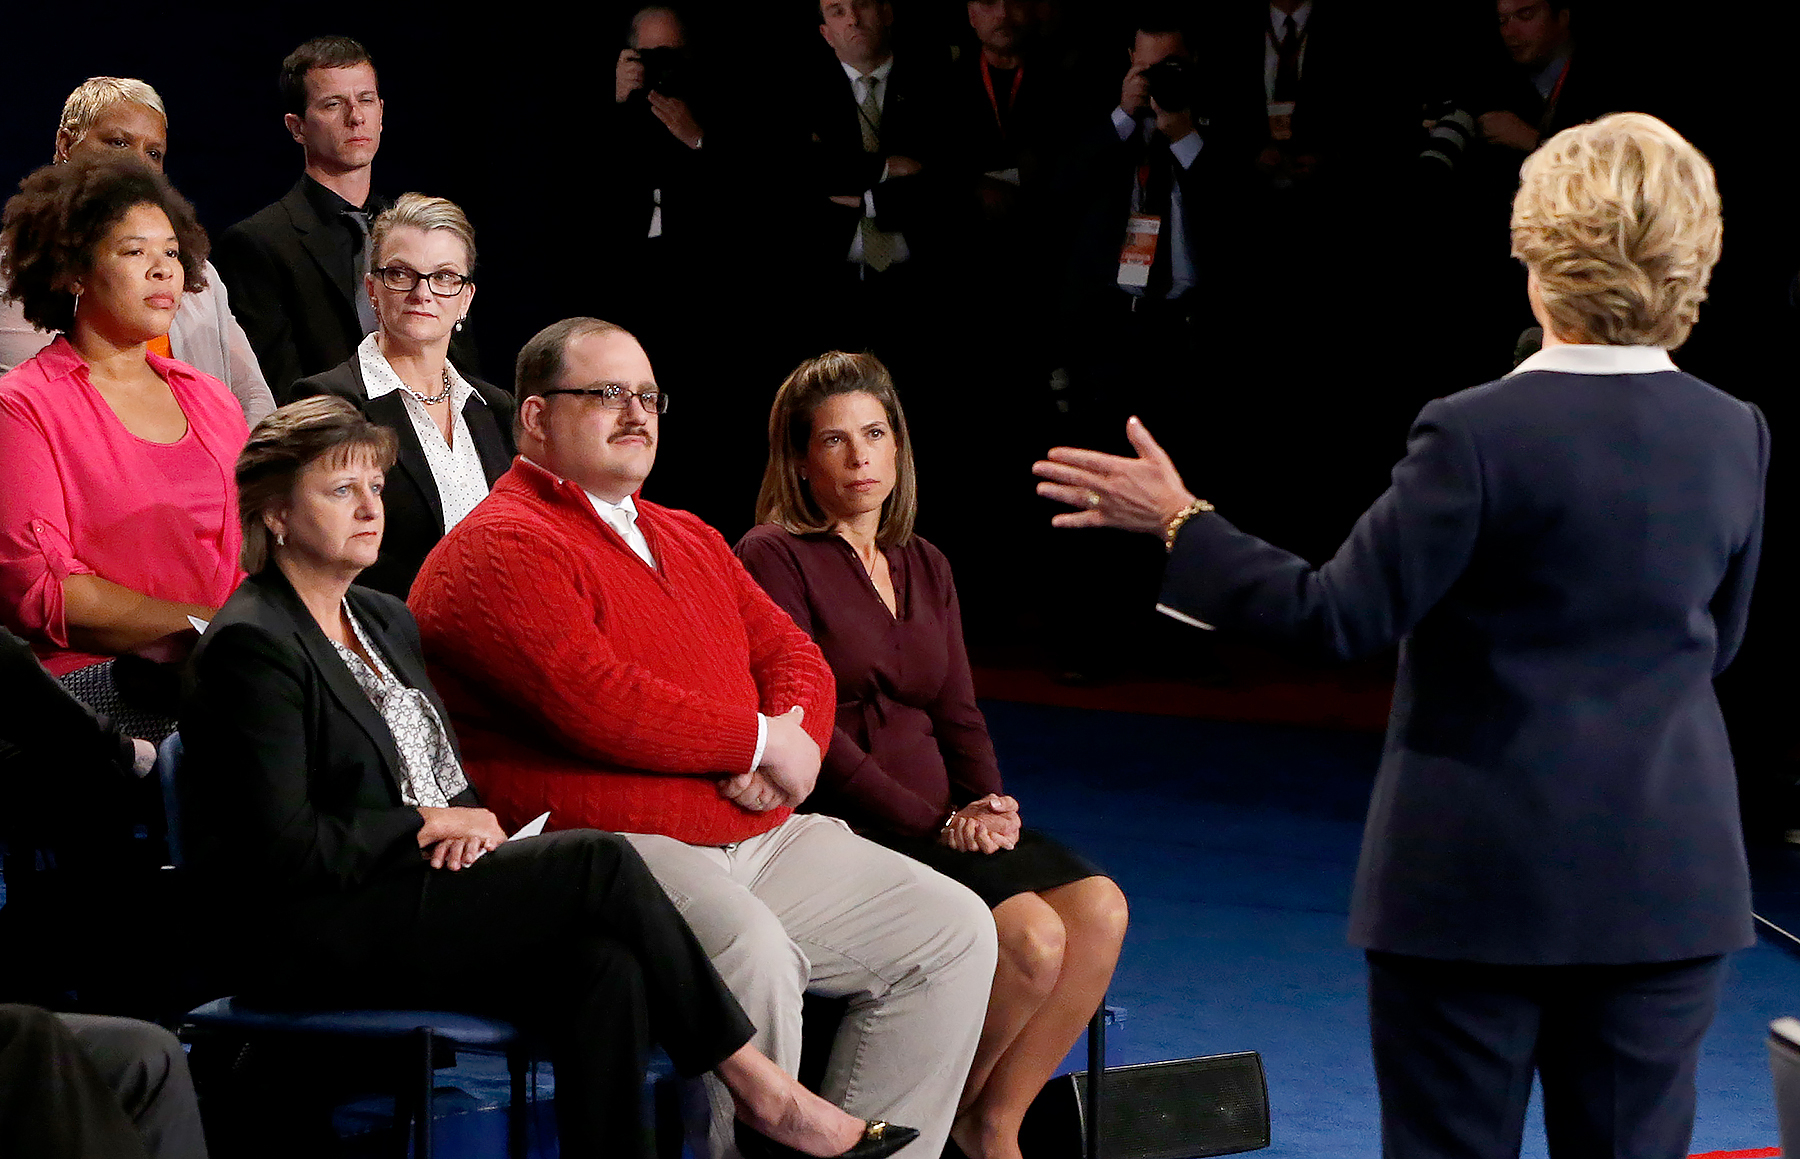 Ken Bone Speaks: Why He Wore That Red Sweater to Presidential Debate